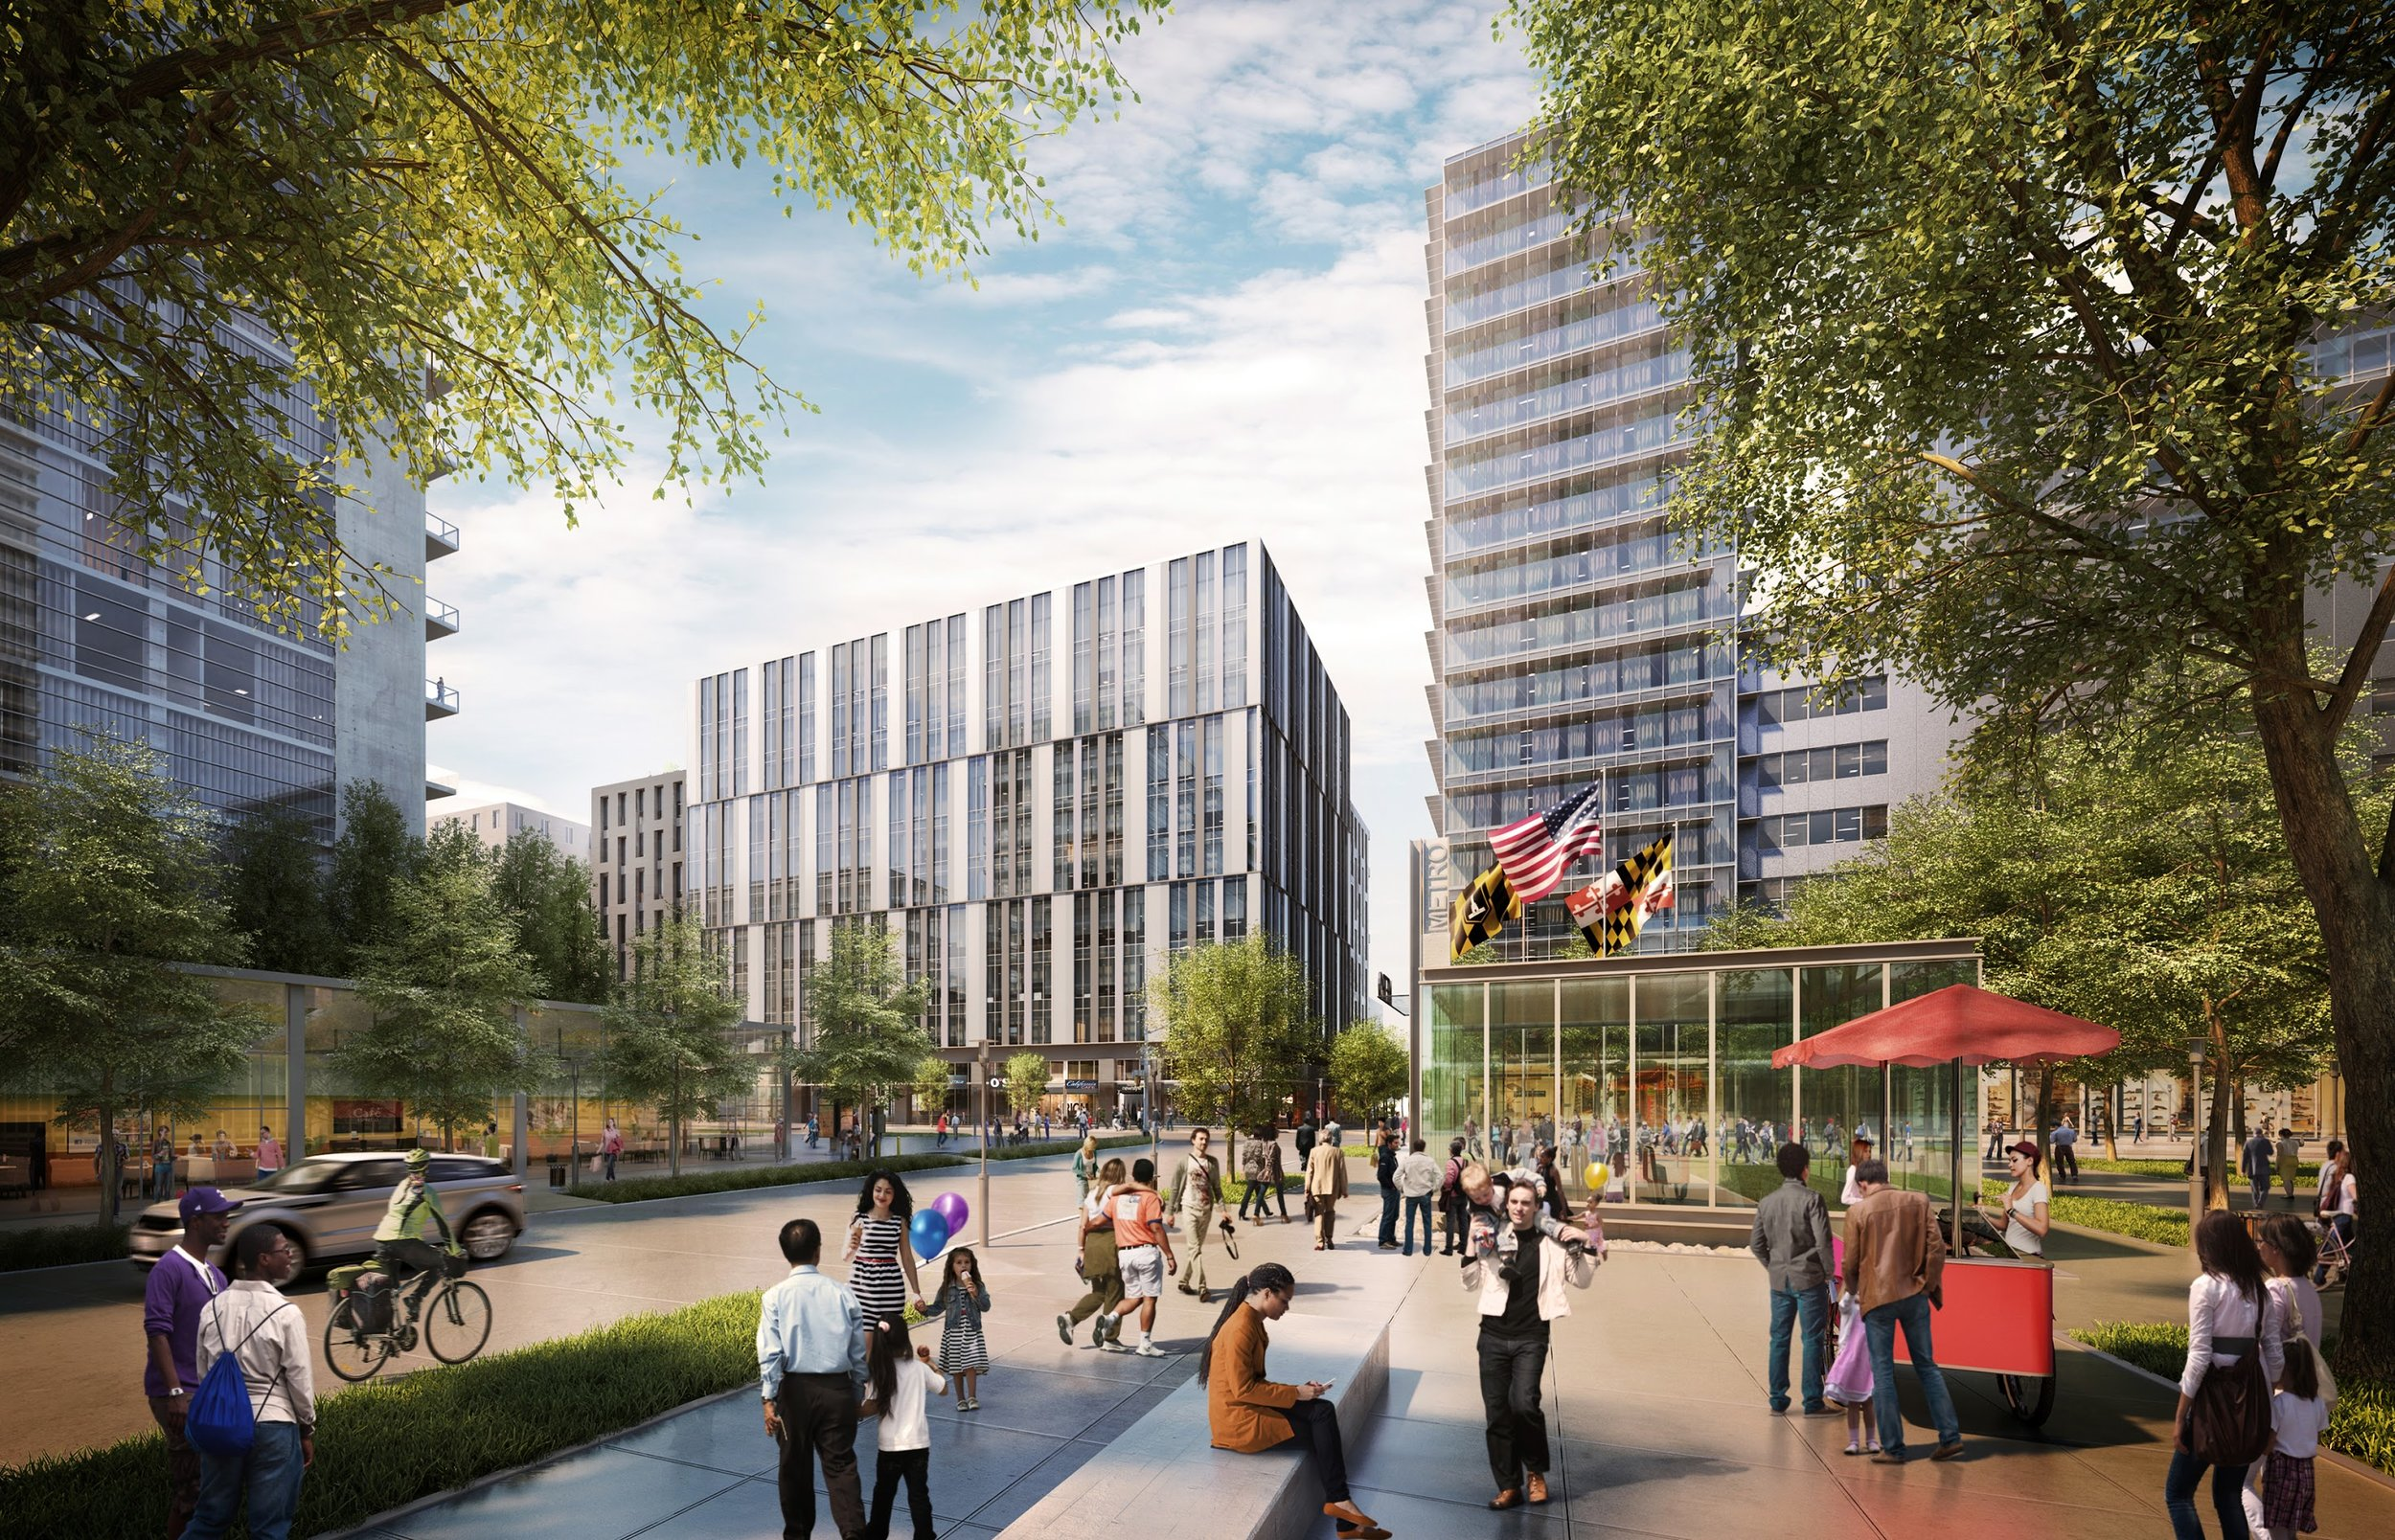 The State Center redevelopment plan would turn a concrete wasteland with the largest concentration of State agencies in Maryland into a thriving, vibrant, 24/7 neighborhood that features efficient state and private offices, residential condominiums and apartments, a grocery store, a school, parking and retail.